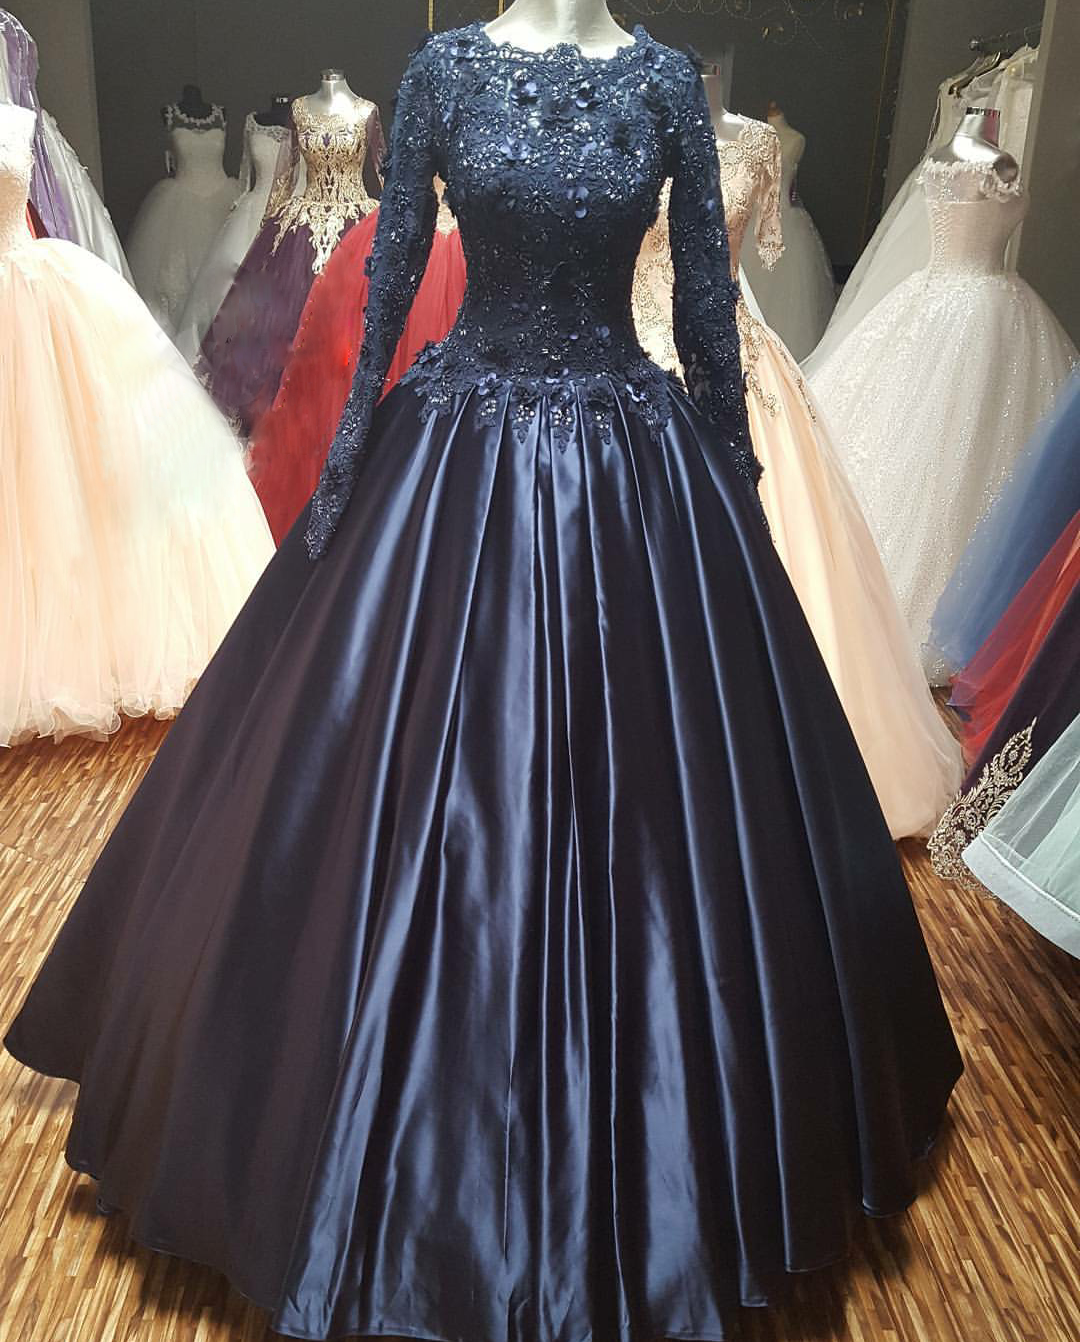 Navy Blue Ball Gown Prom Dress With Long Sleeves Scoop Neck Pleated Satin And Lace Applique Flowers Formal Dresses Evening Party Gowns